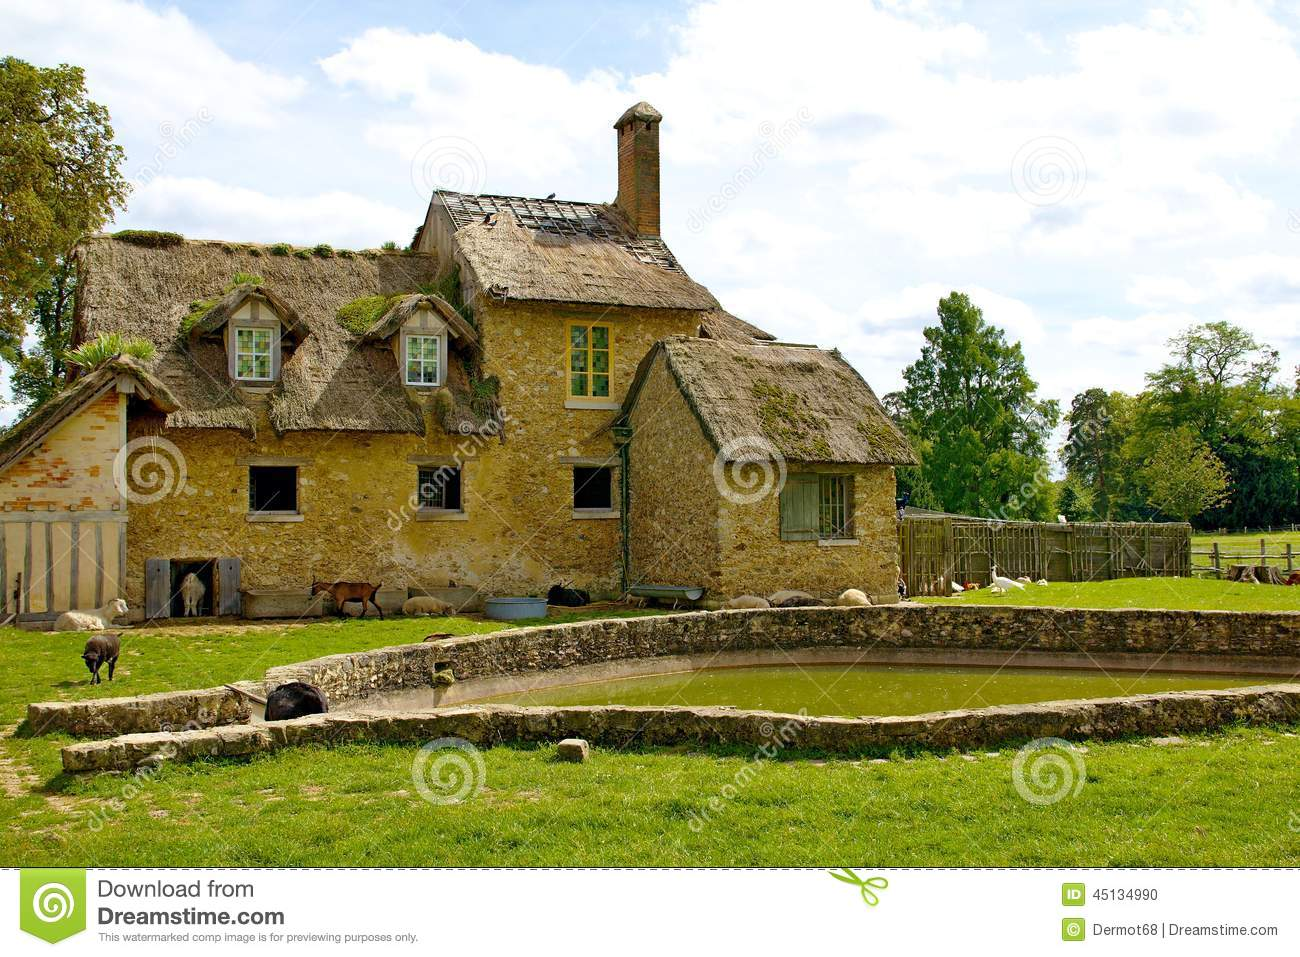 Old French village stock photo. Image of closeup, plant - 45134990